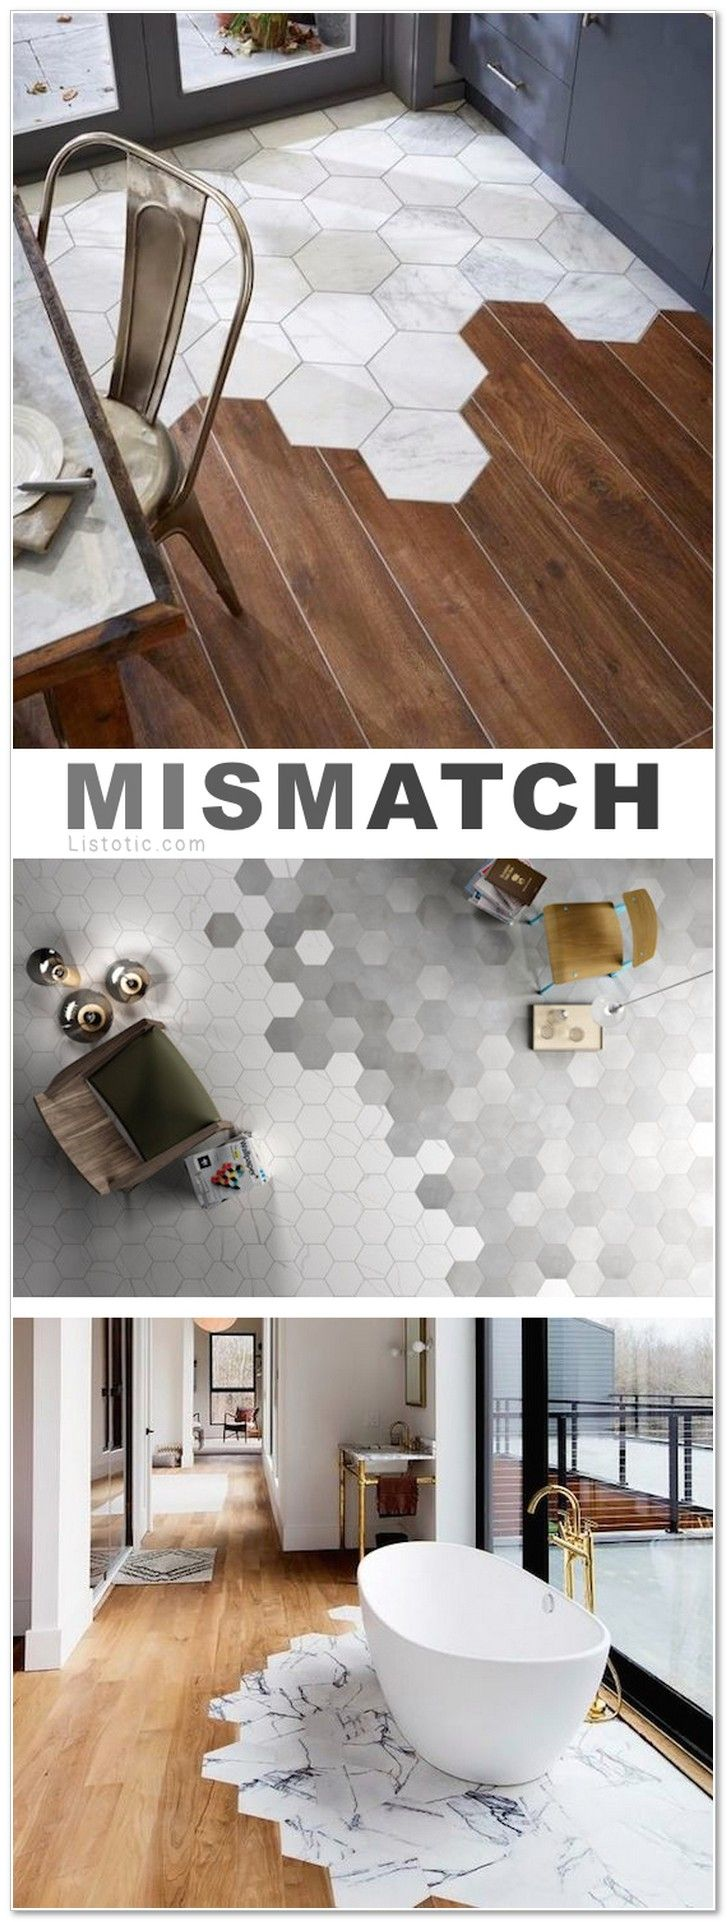 11 Stunning Tile Ideas For Your Home (I love these!)